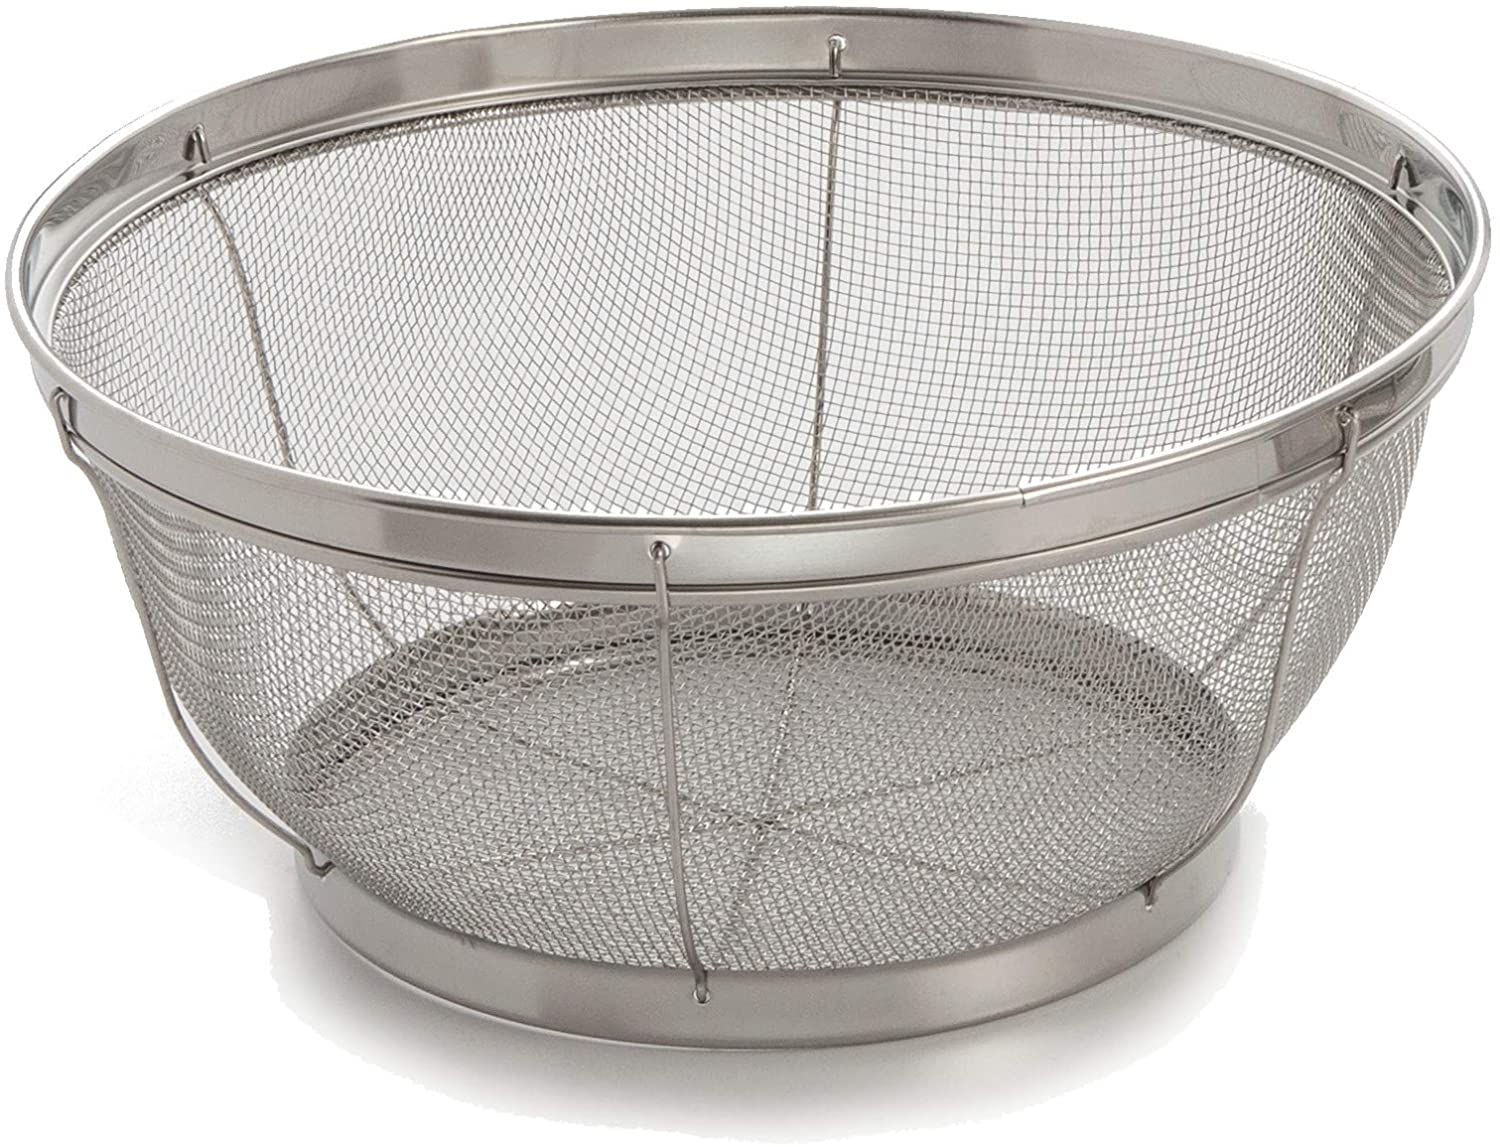 Amazon Com Cook Pro 7 1 2 Inch Stainless Steel Mesh Colander Rice Strainer Kitchen Dining